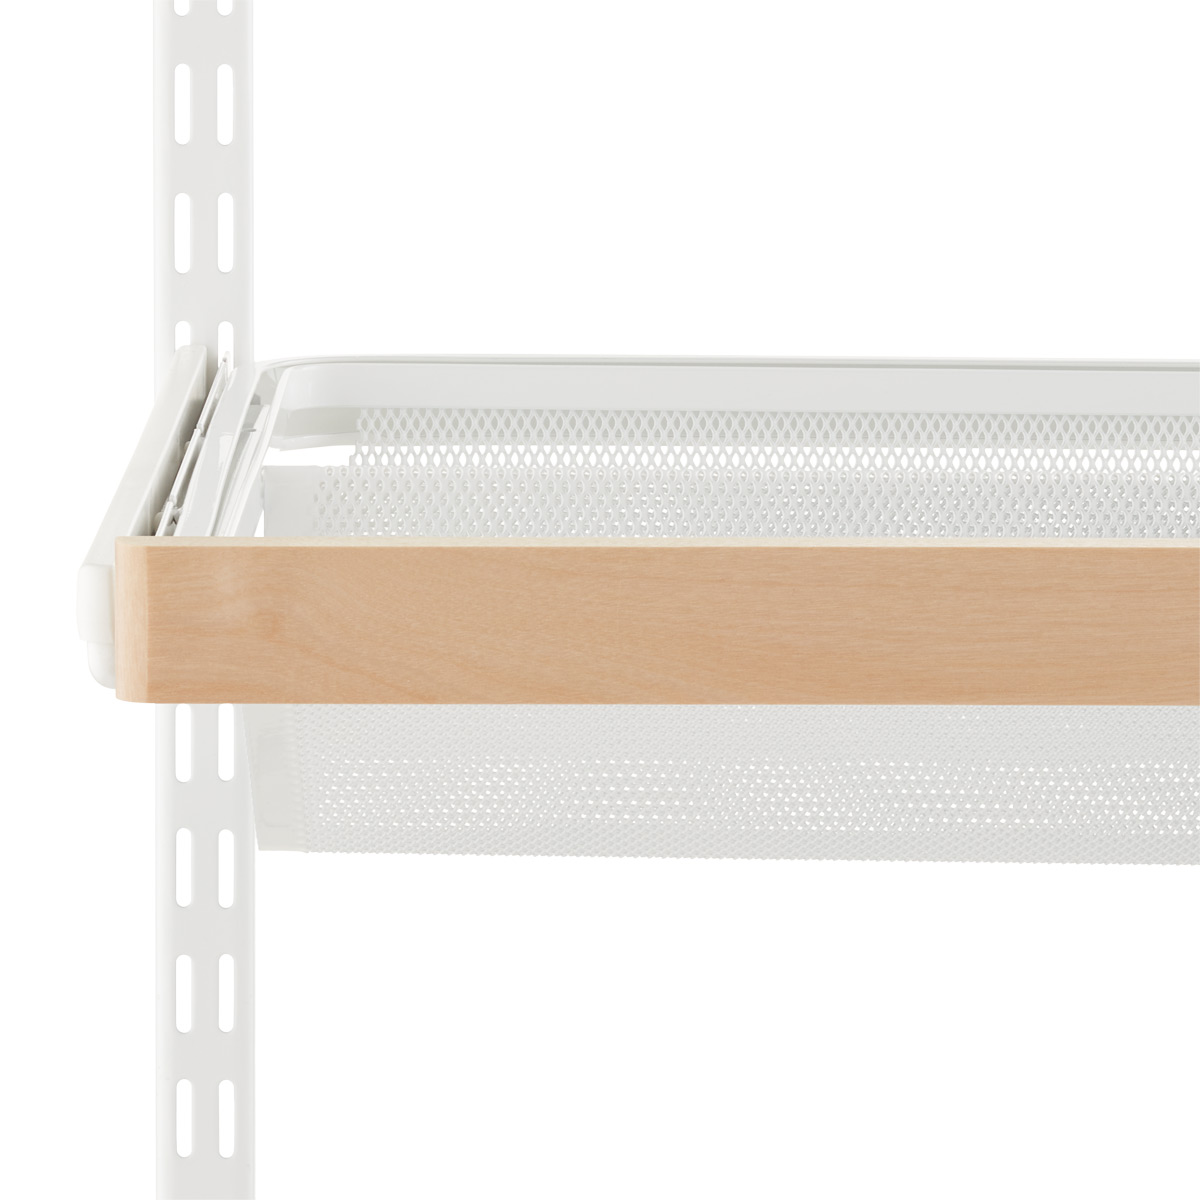 Birch Elfa Décor Gliding Shelf Fascia